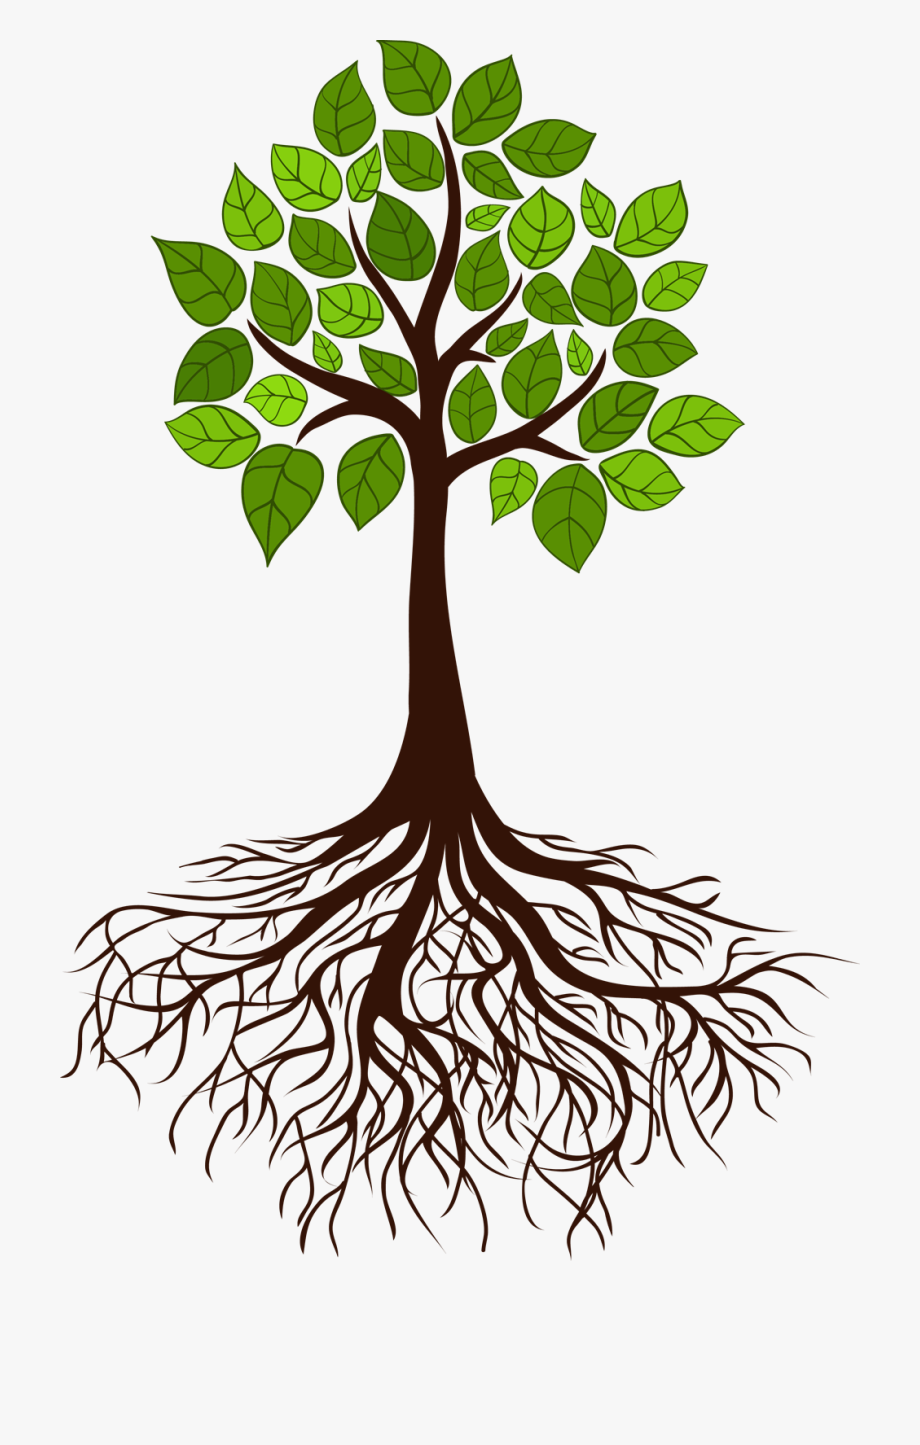 Roots clipart transparent tree leave. With free cliparts on